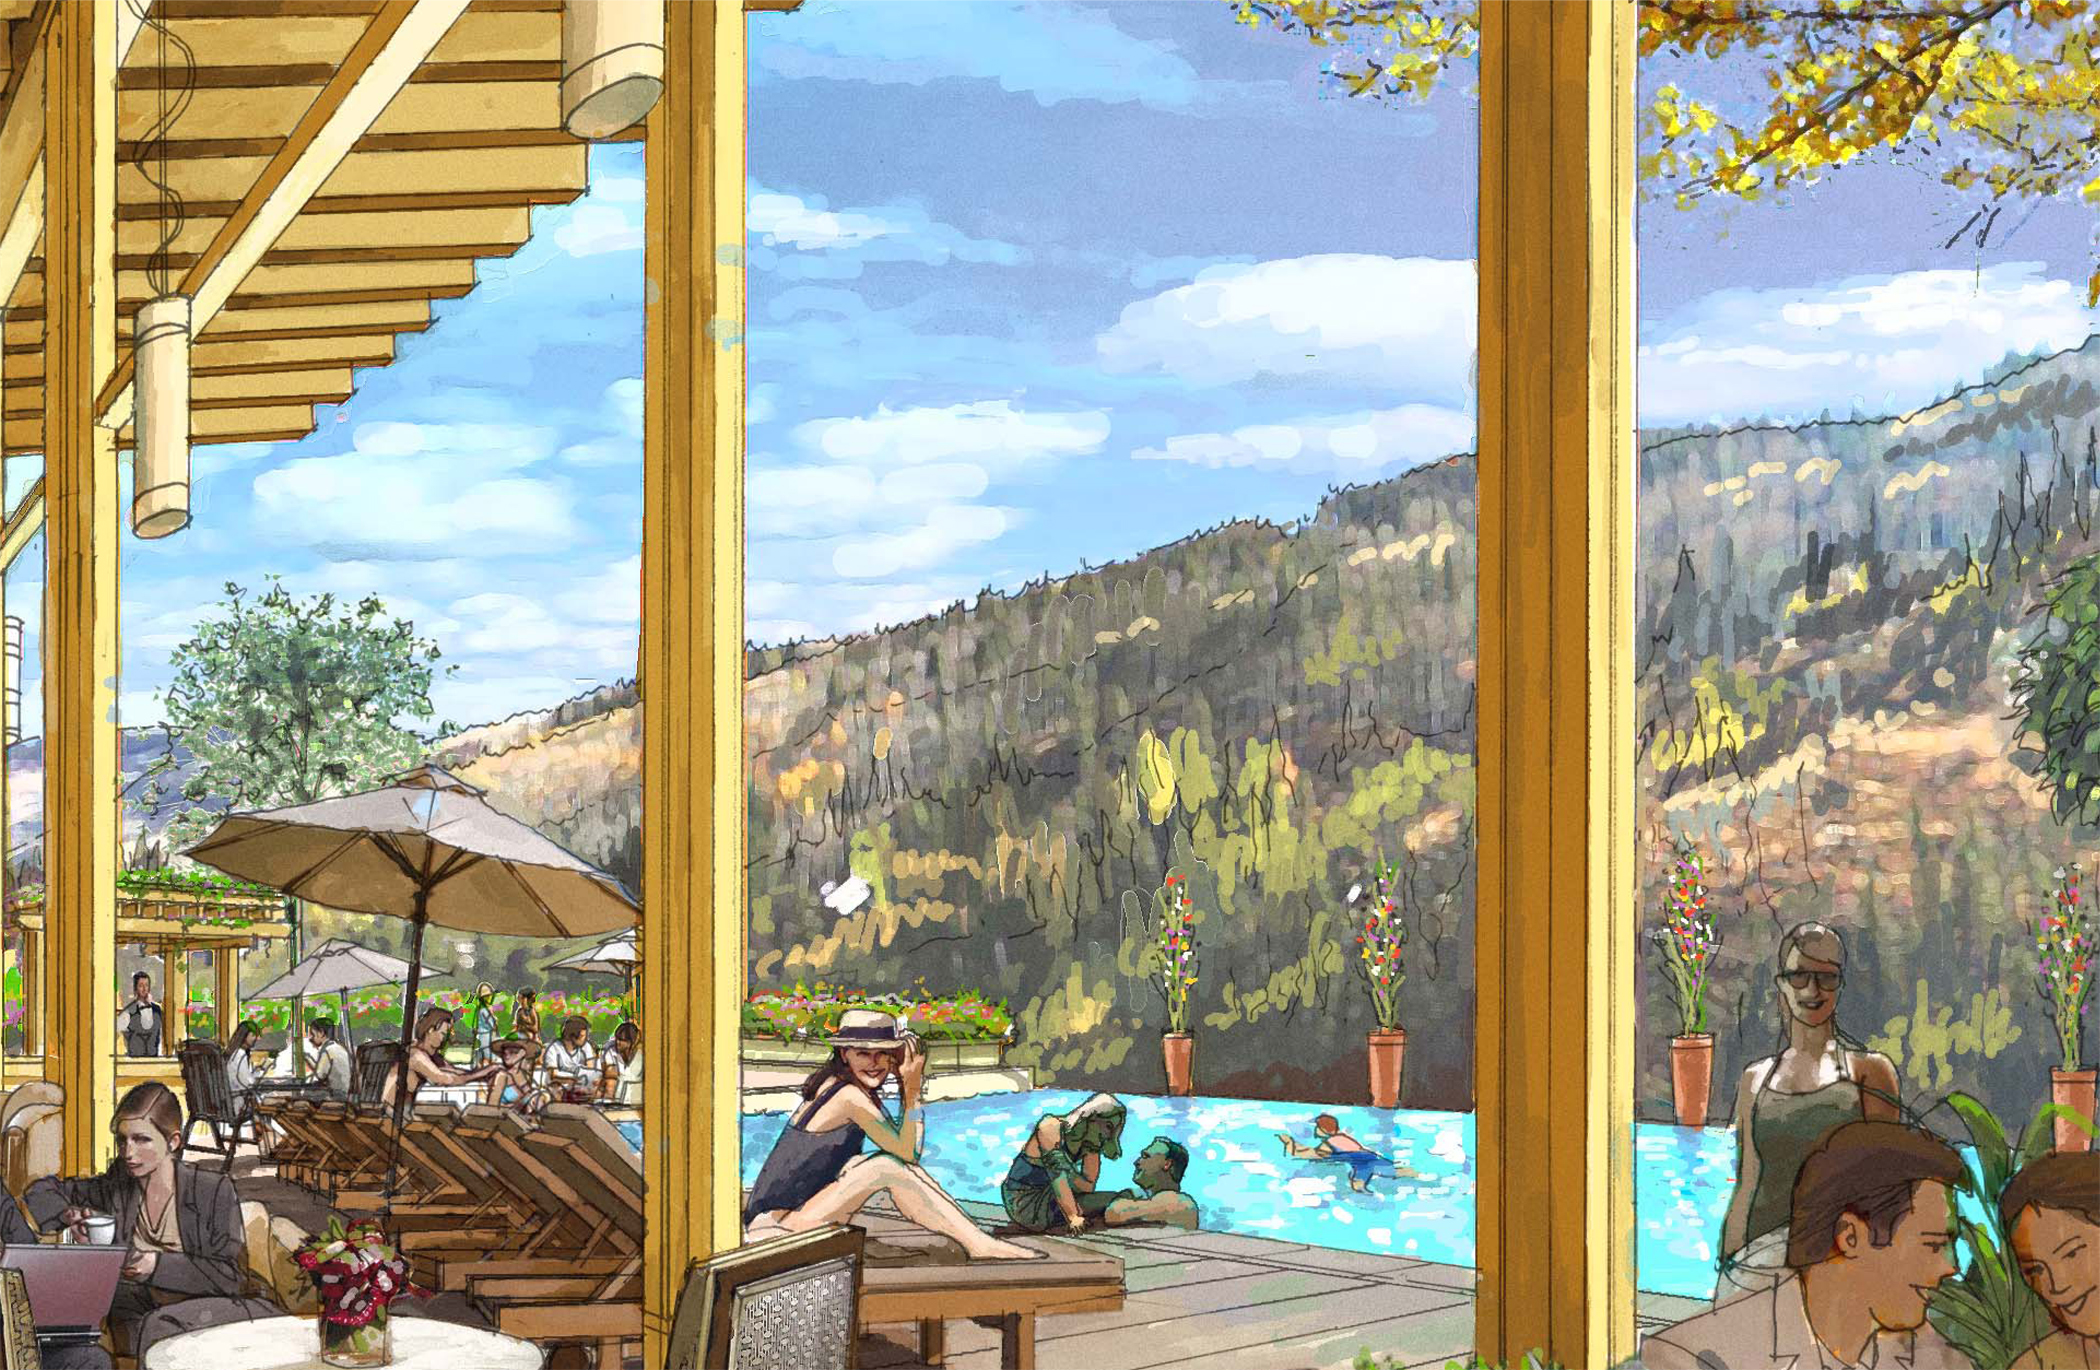 """<img src="""" studioINSITE_Ever_Vail_poolside """"alt=""""Vail, Mountain Commnity, Ever Vail, Sking, Snowboarding, Mountain Living, Planning, Landscape Architecture, Mountain Resort, Rocky Mountains, Winter,  """" title=""""Ever Vail""""/>"""